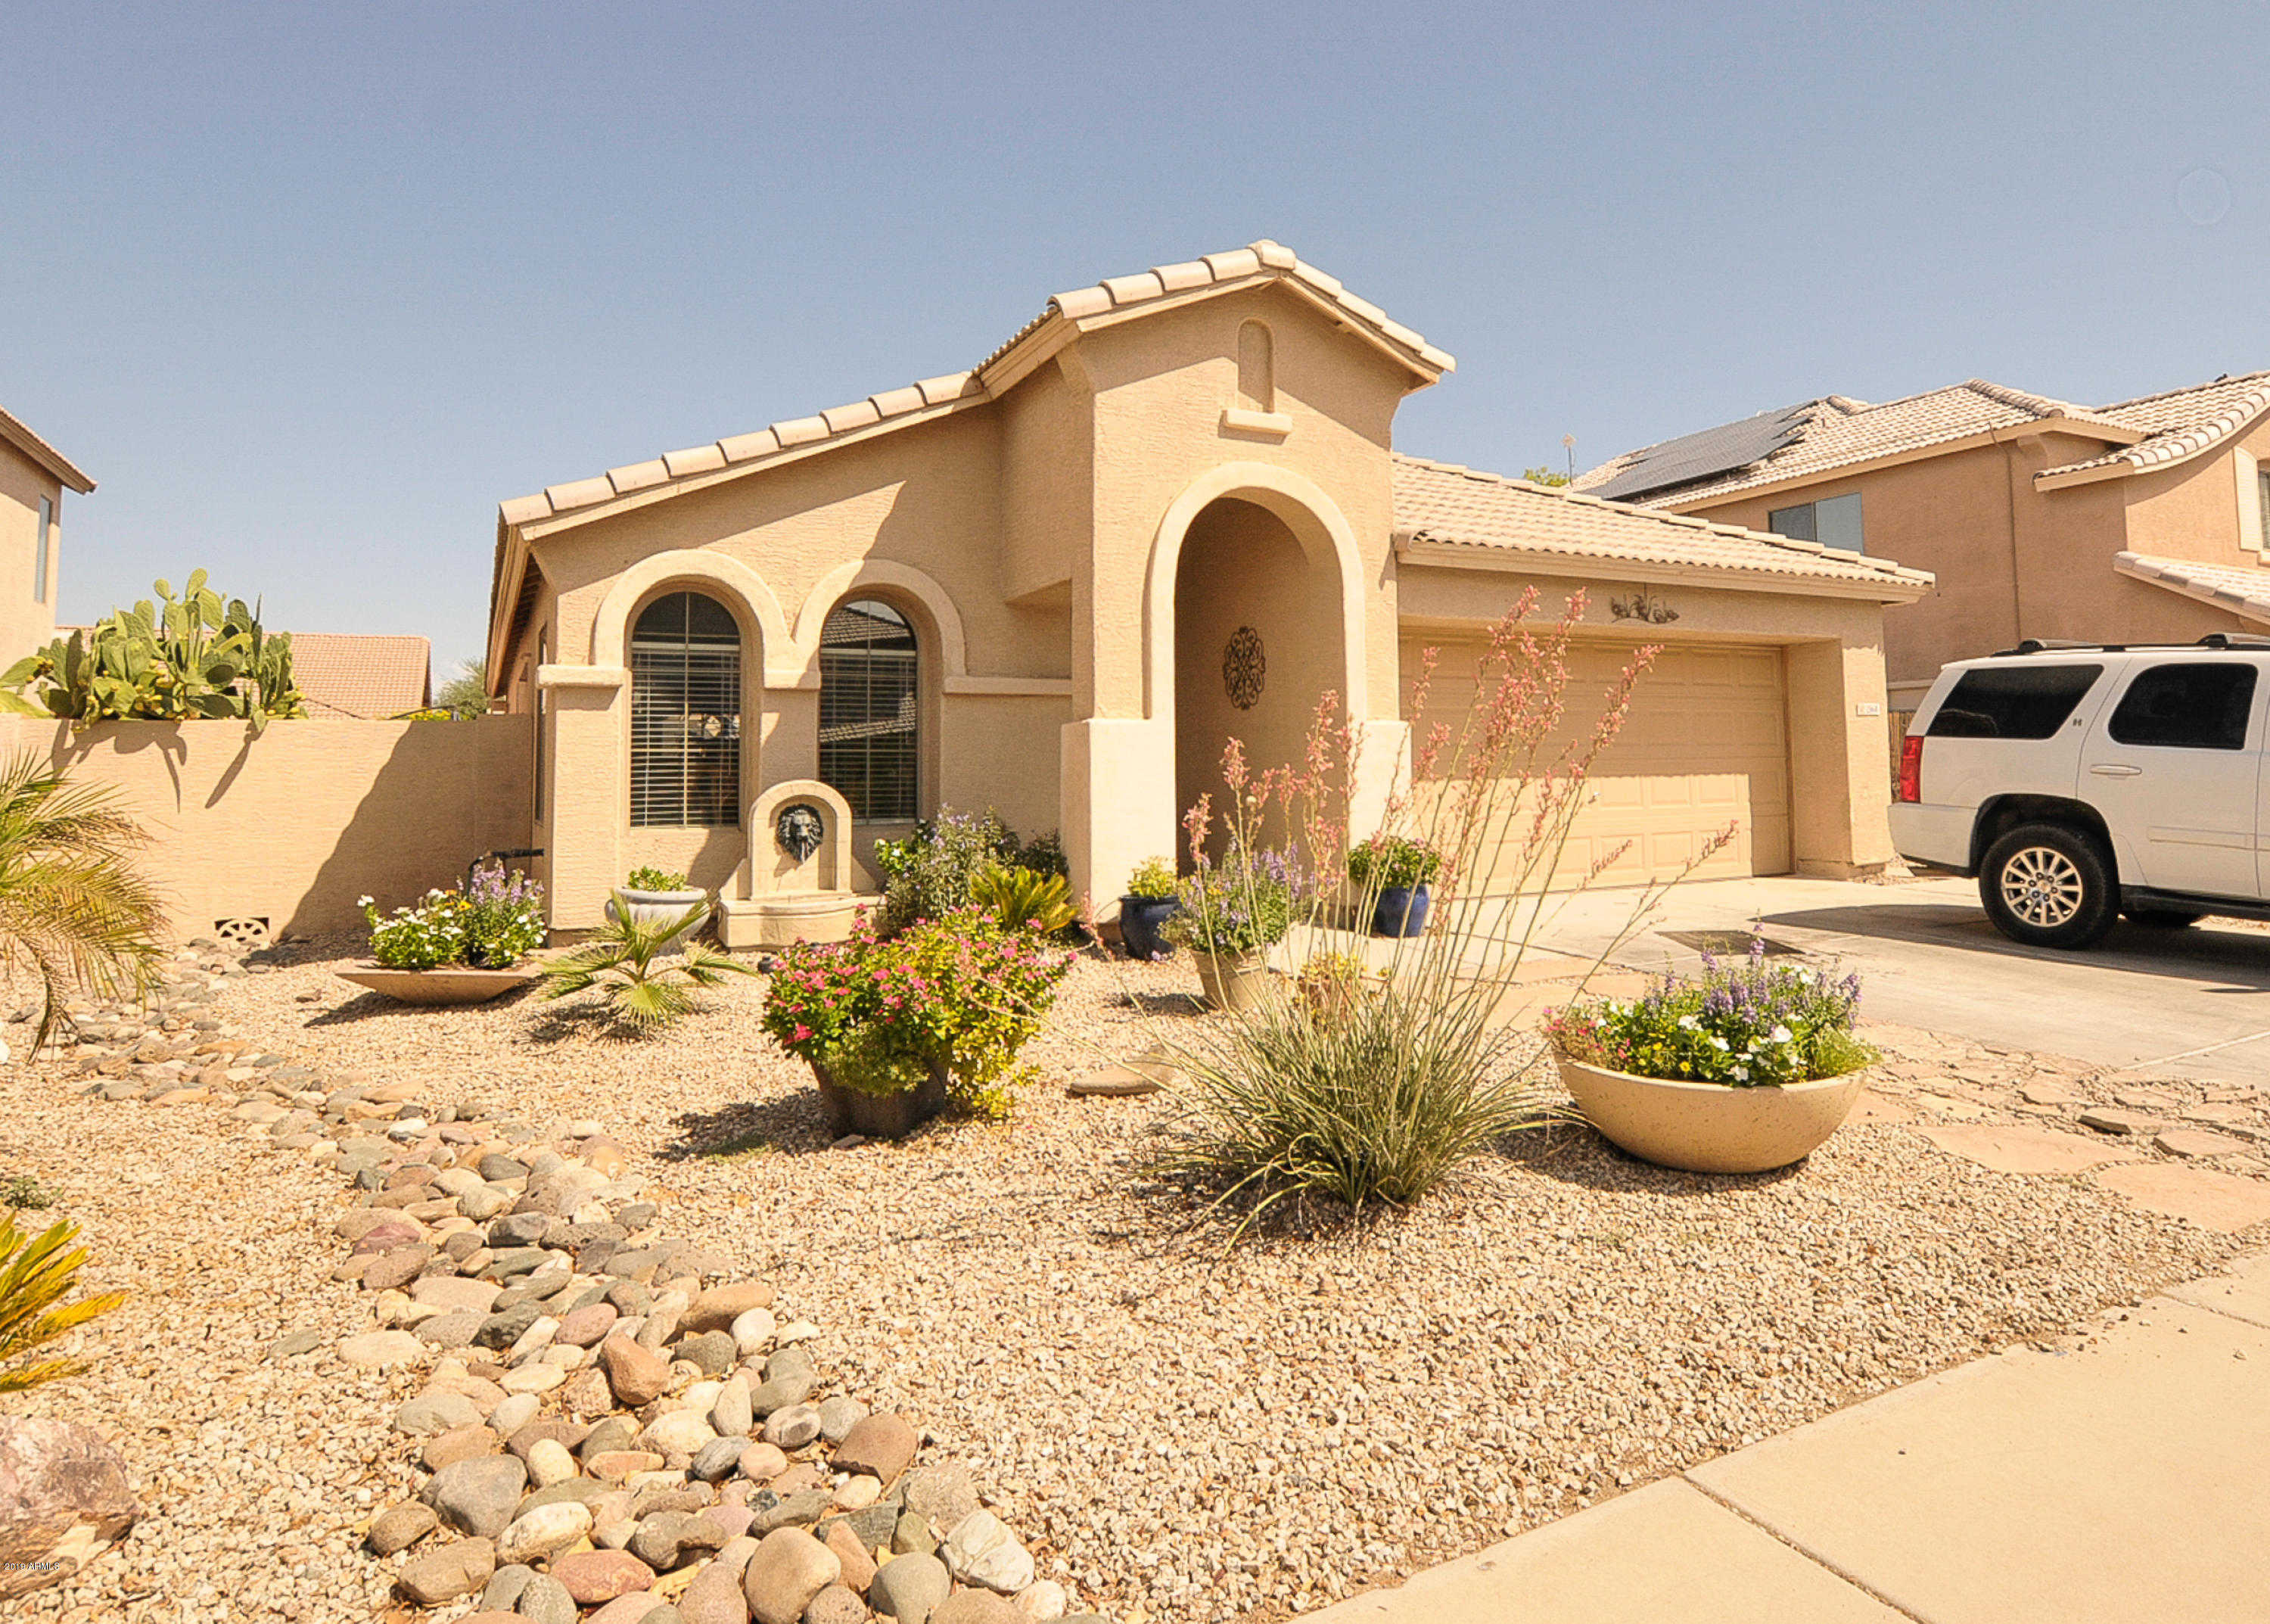 $200,000 - 3Br/2Ba - Home for Sale in Highland Manor, Casa Grande